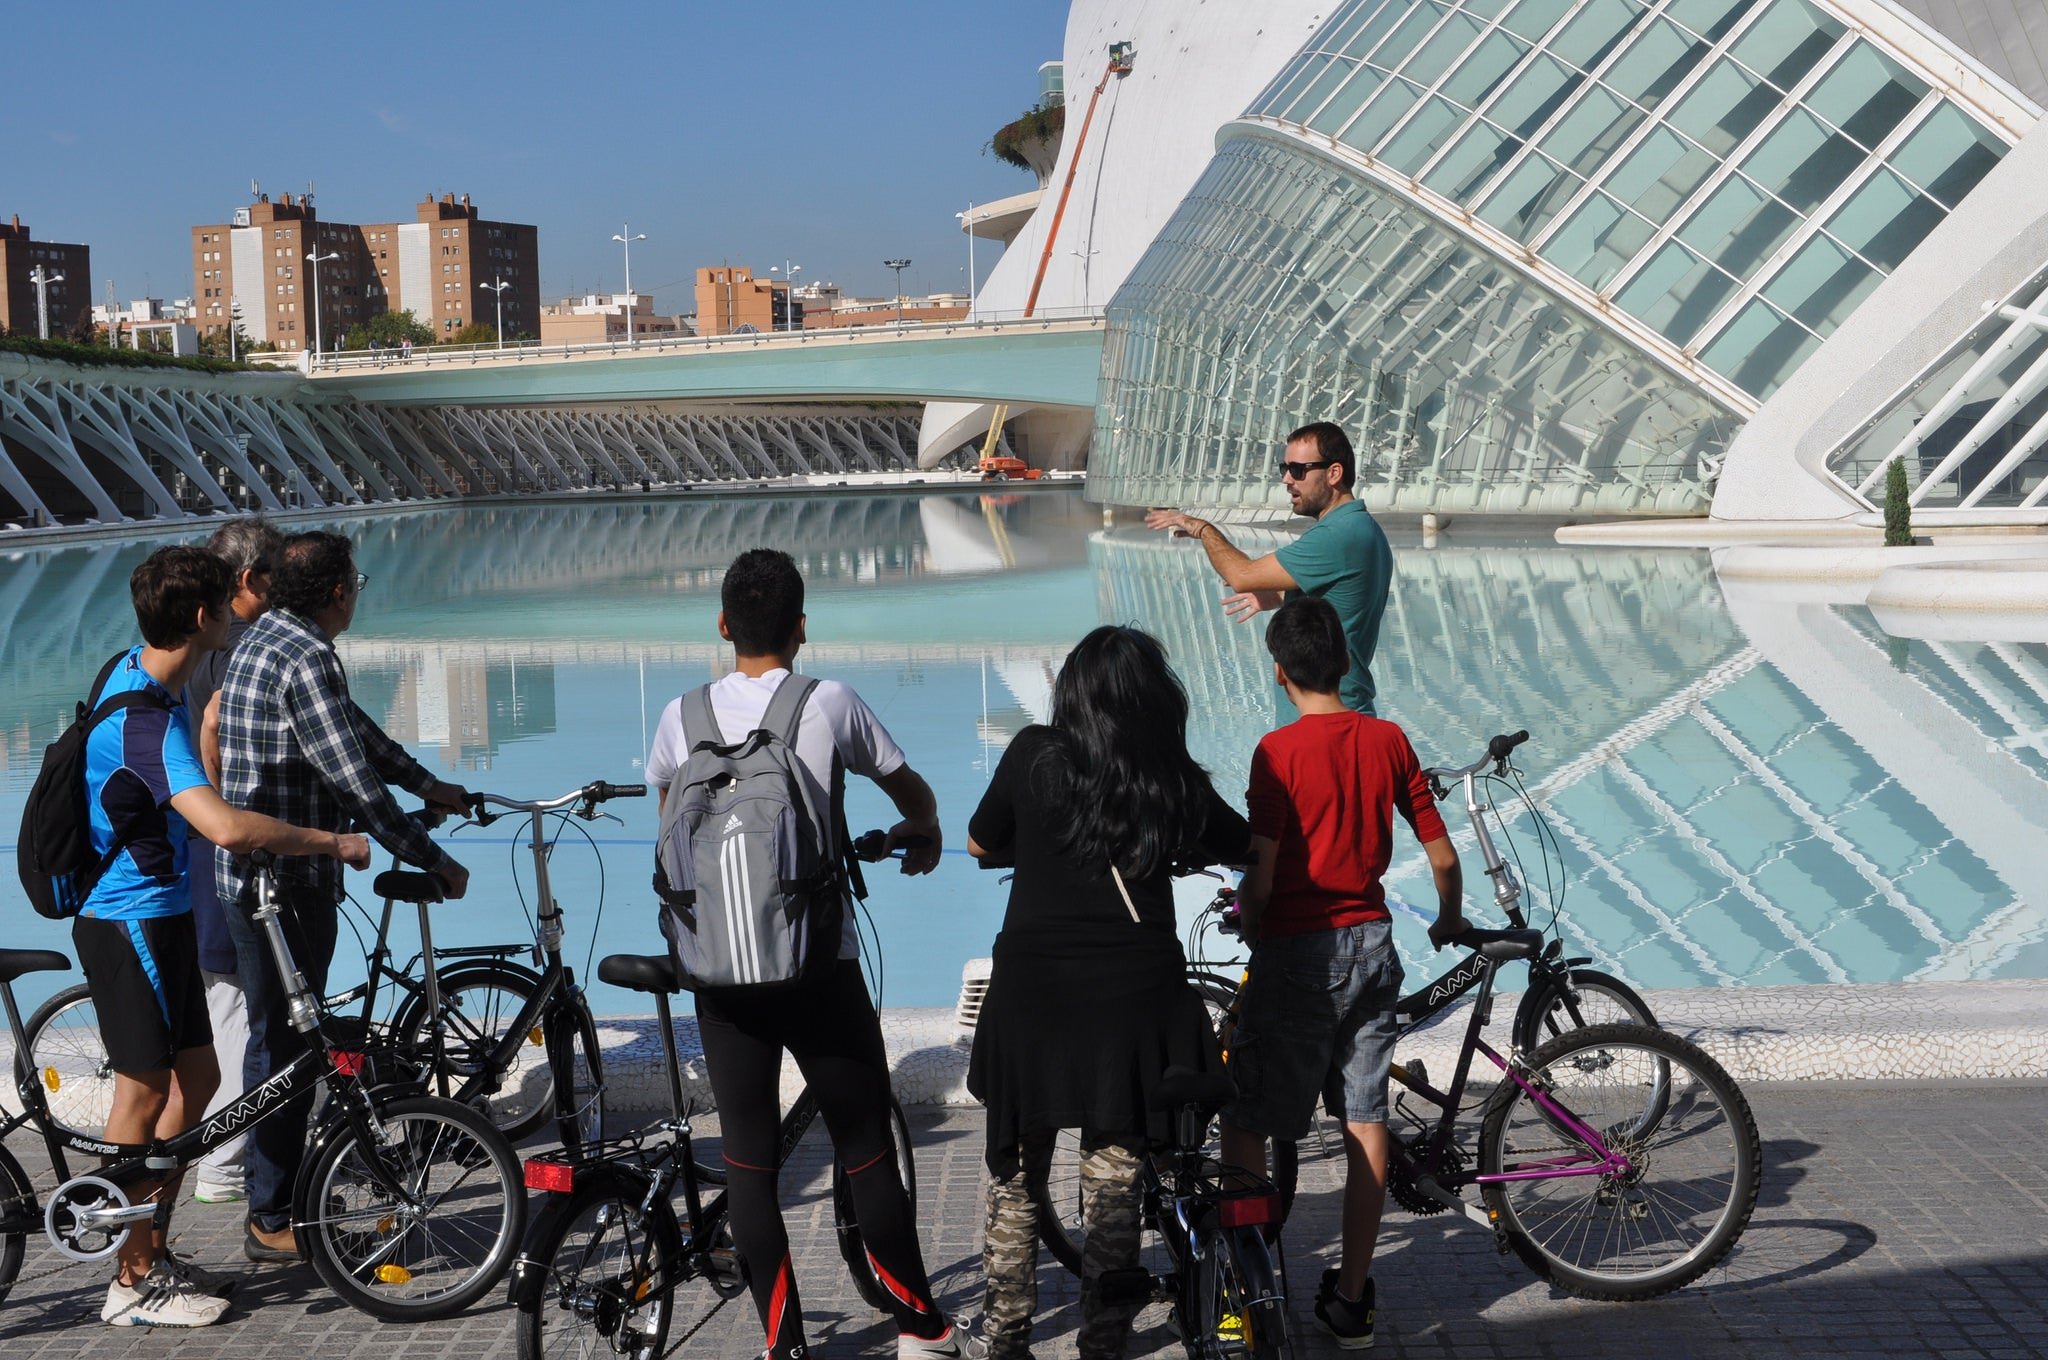 Cycle Sport in I Bike Valencia